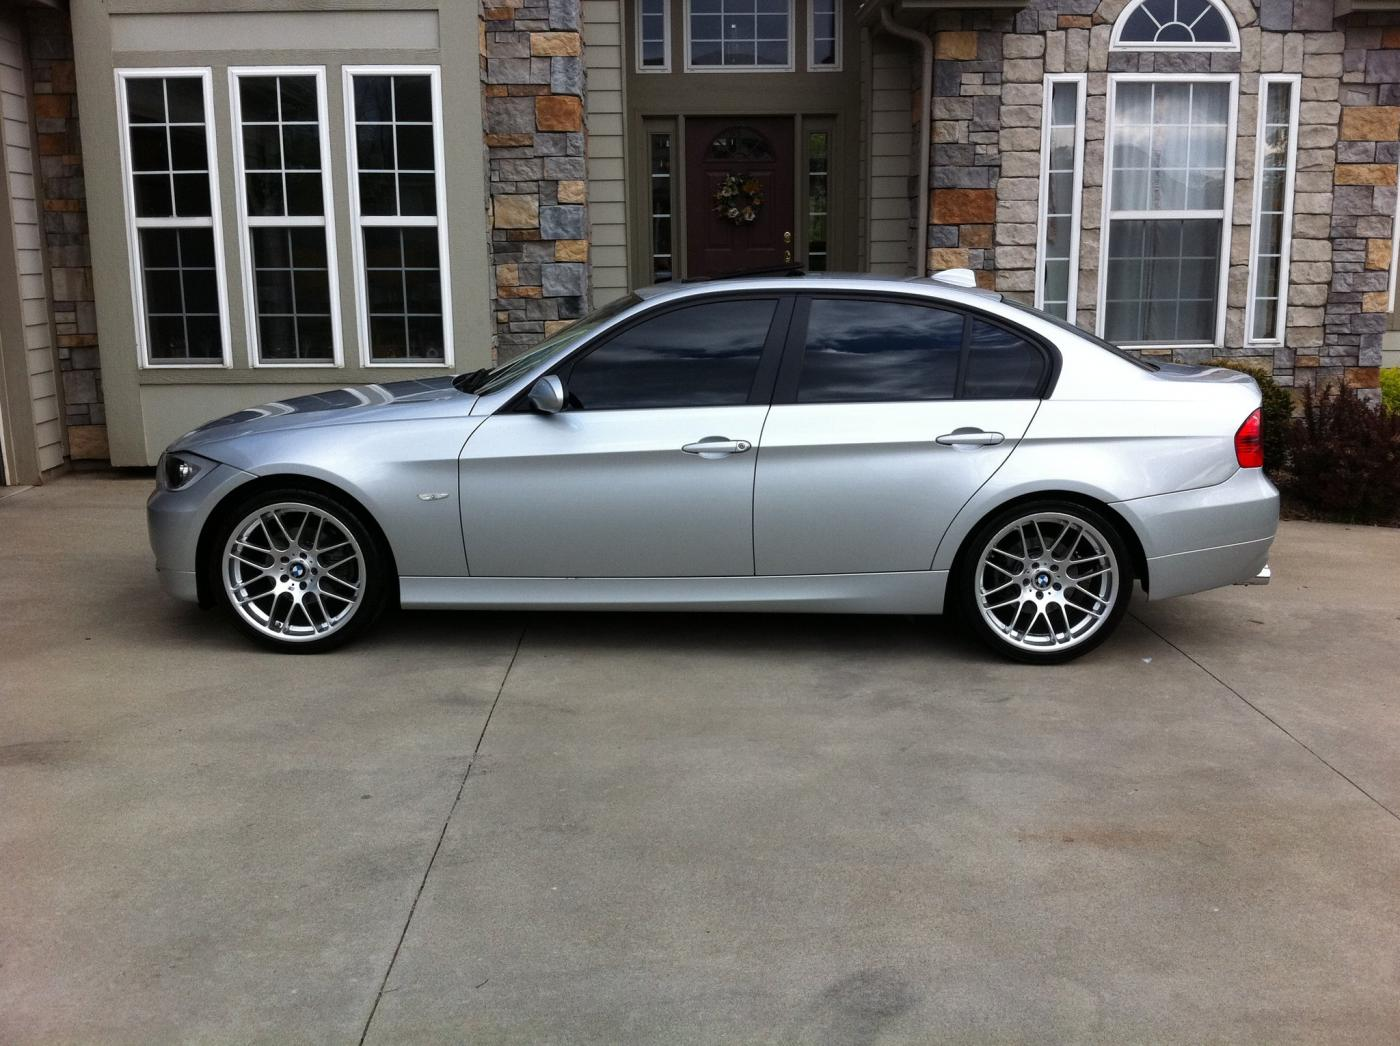 Will these Rims fit my 07 328i E90 Sedan